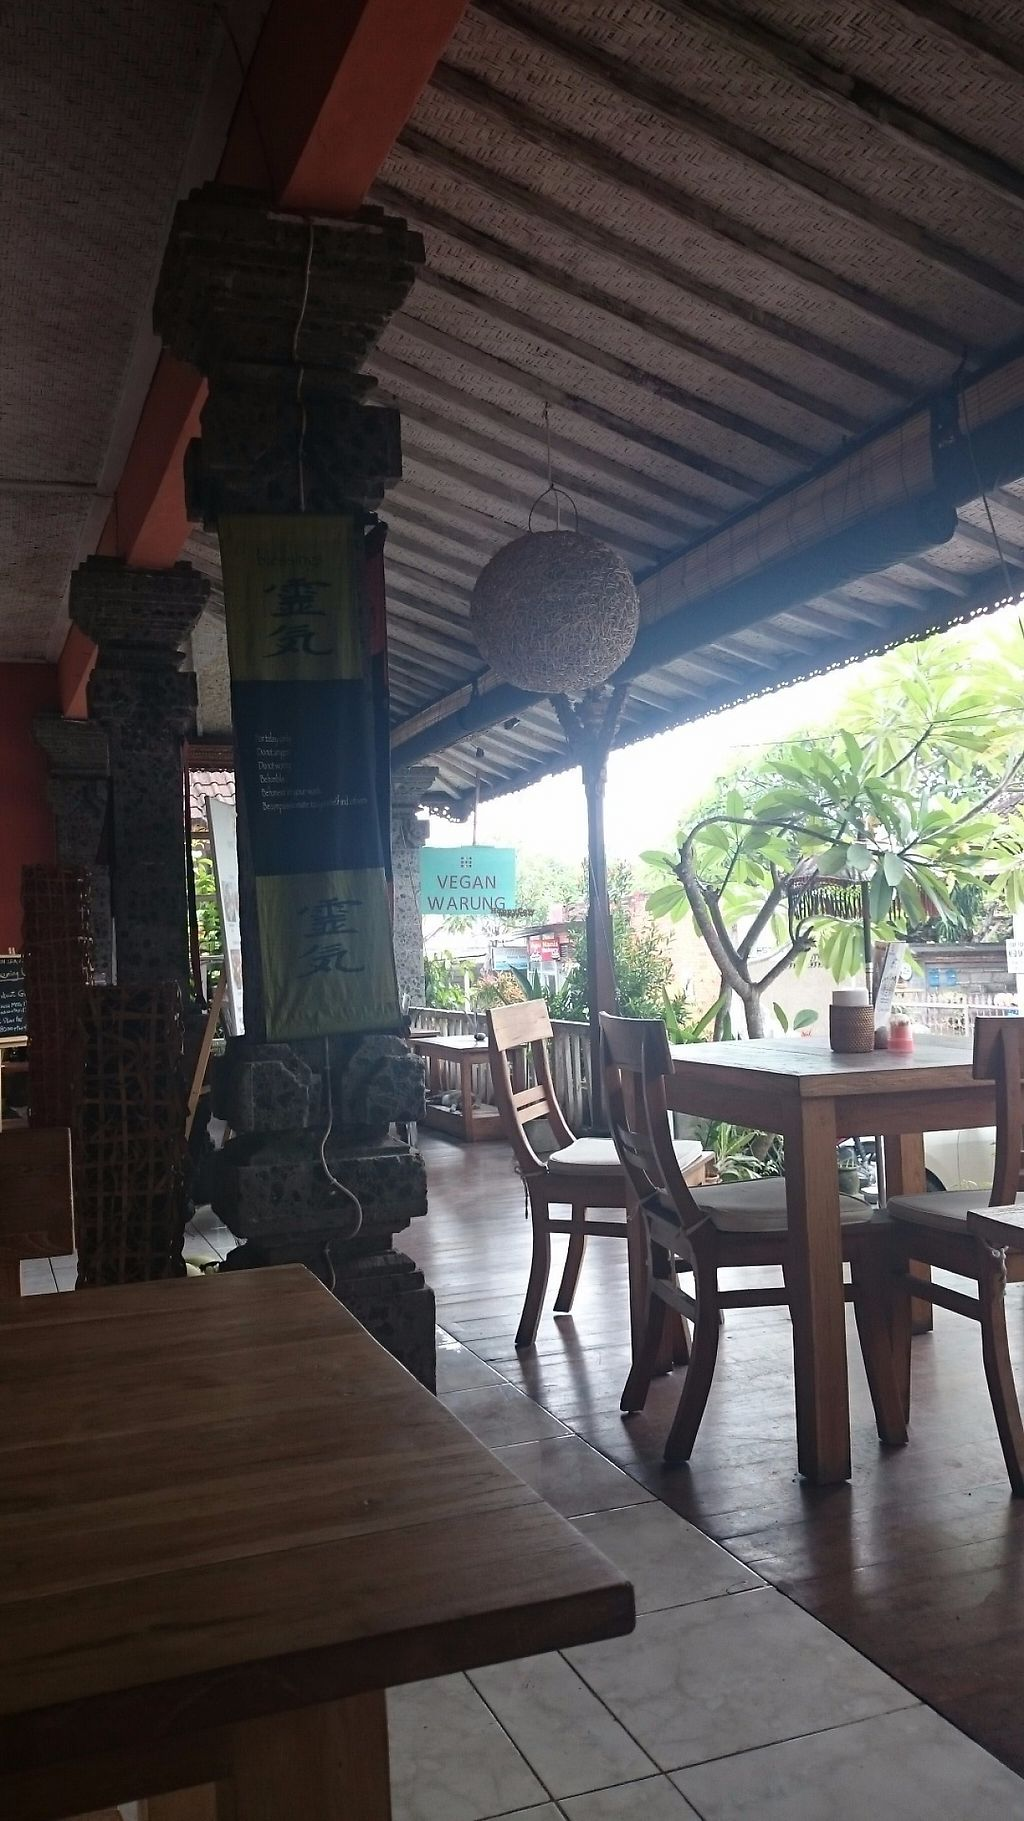 """Photo of Nine Heaven Vegan Warung  by <a href=""""/members/profile/Cynthia1998"""">Cynthia1998</a> <br/>Interior  <br/> December 8, 2016  - <a href='/contact/abuse/image/50049/198166'>Report</a>"""